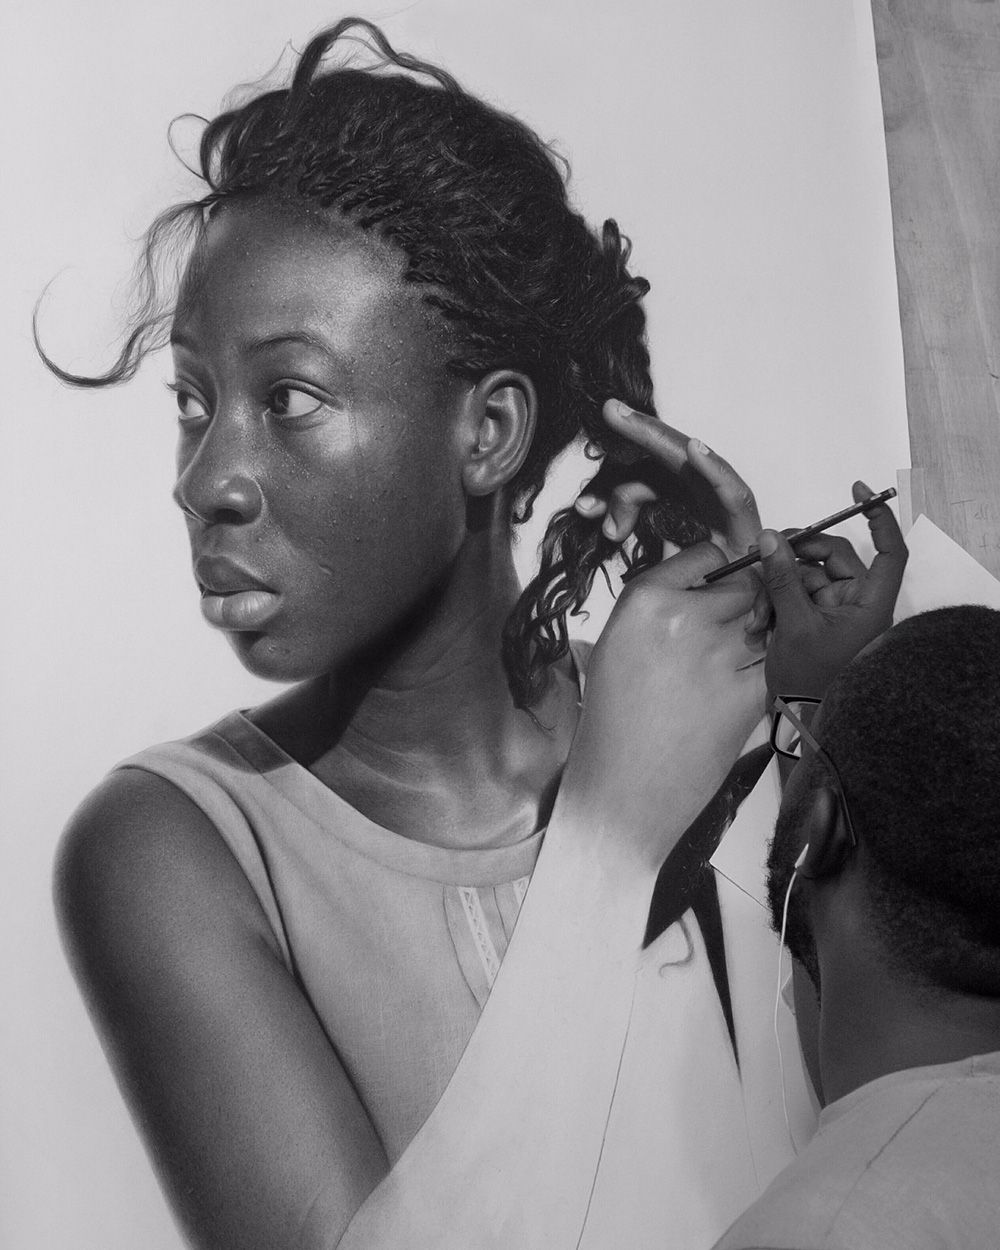 This morning we are admiring the very impressive work of nigerian artist arinze stanley whose hyperreal pencil drawings are almost indistinguishable